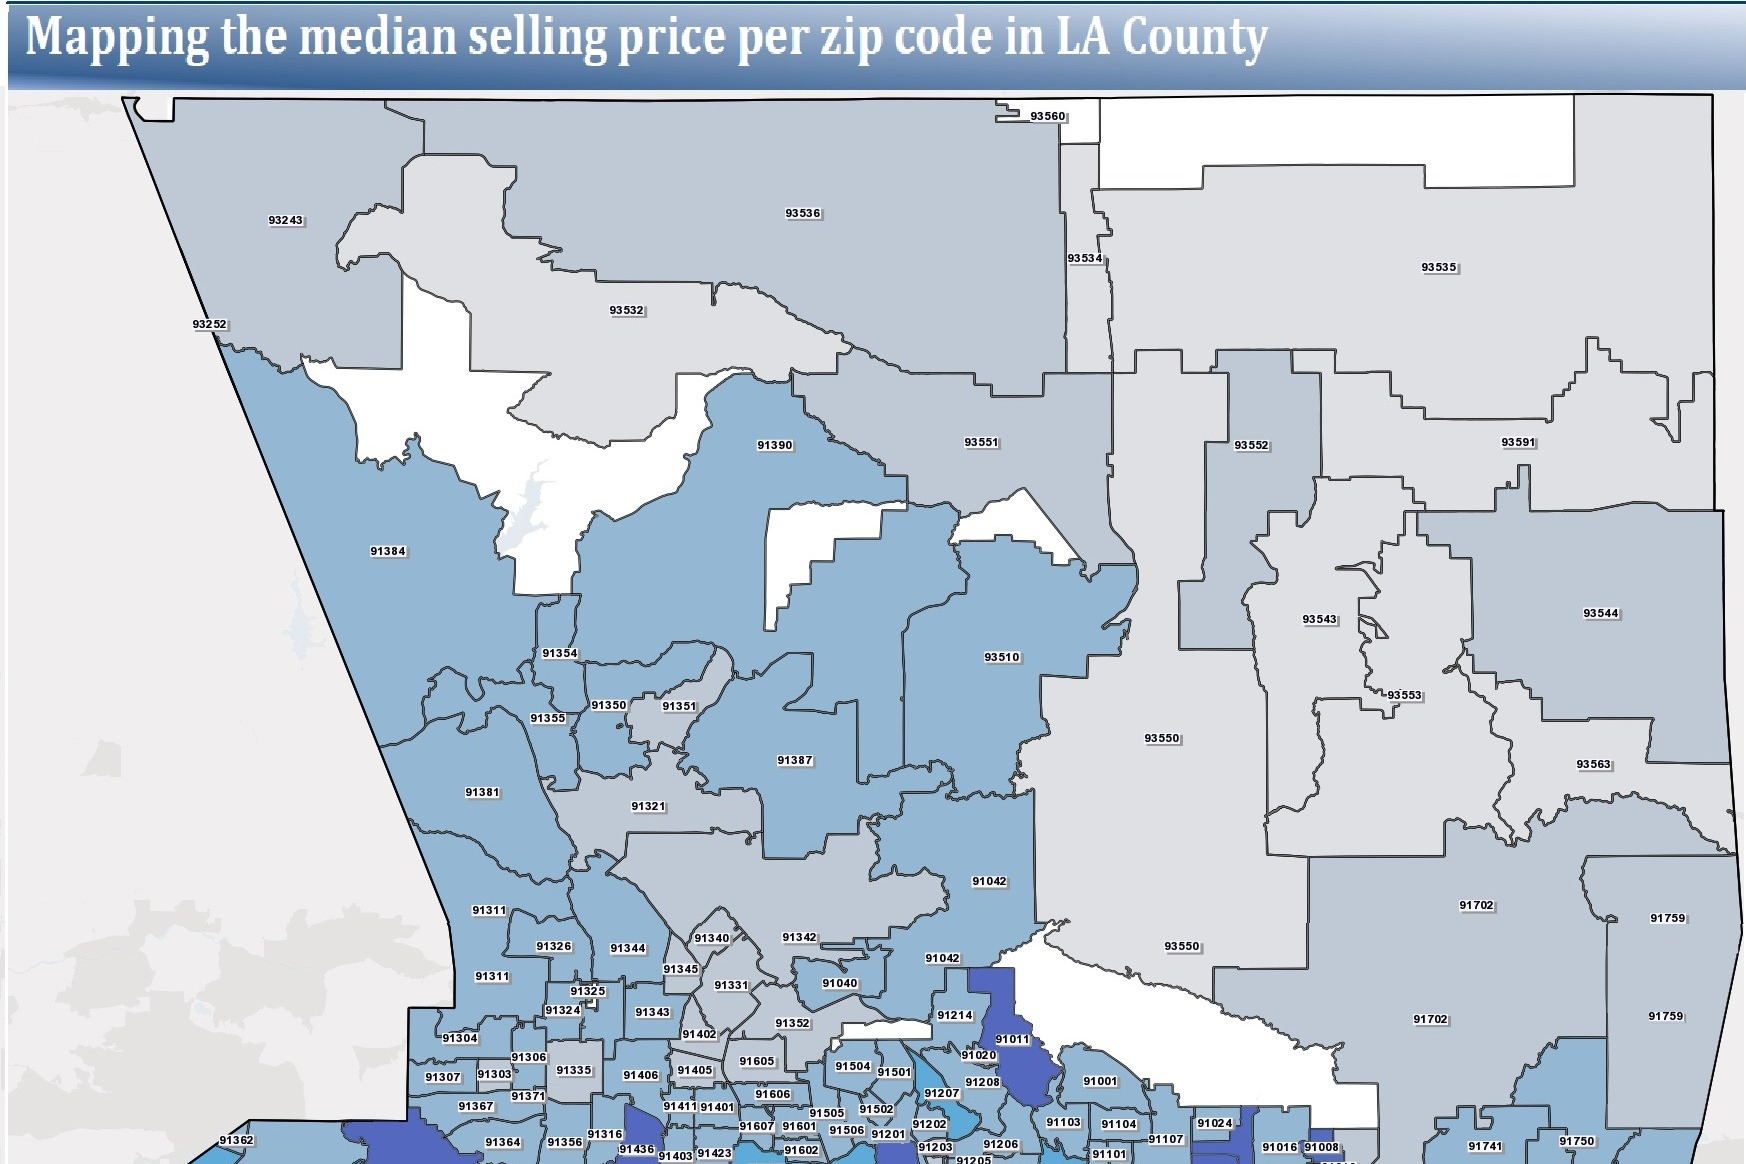 L.A. Housing Market Heating Up in 2014, Median Price at Five-Year High